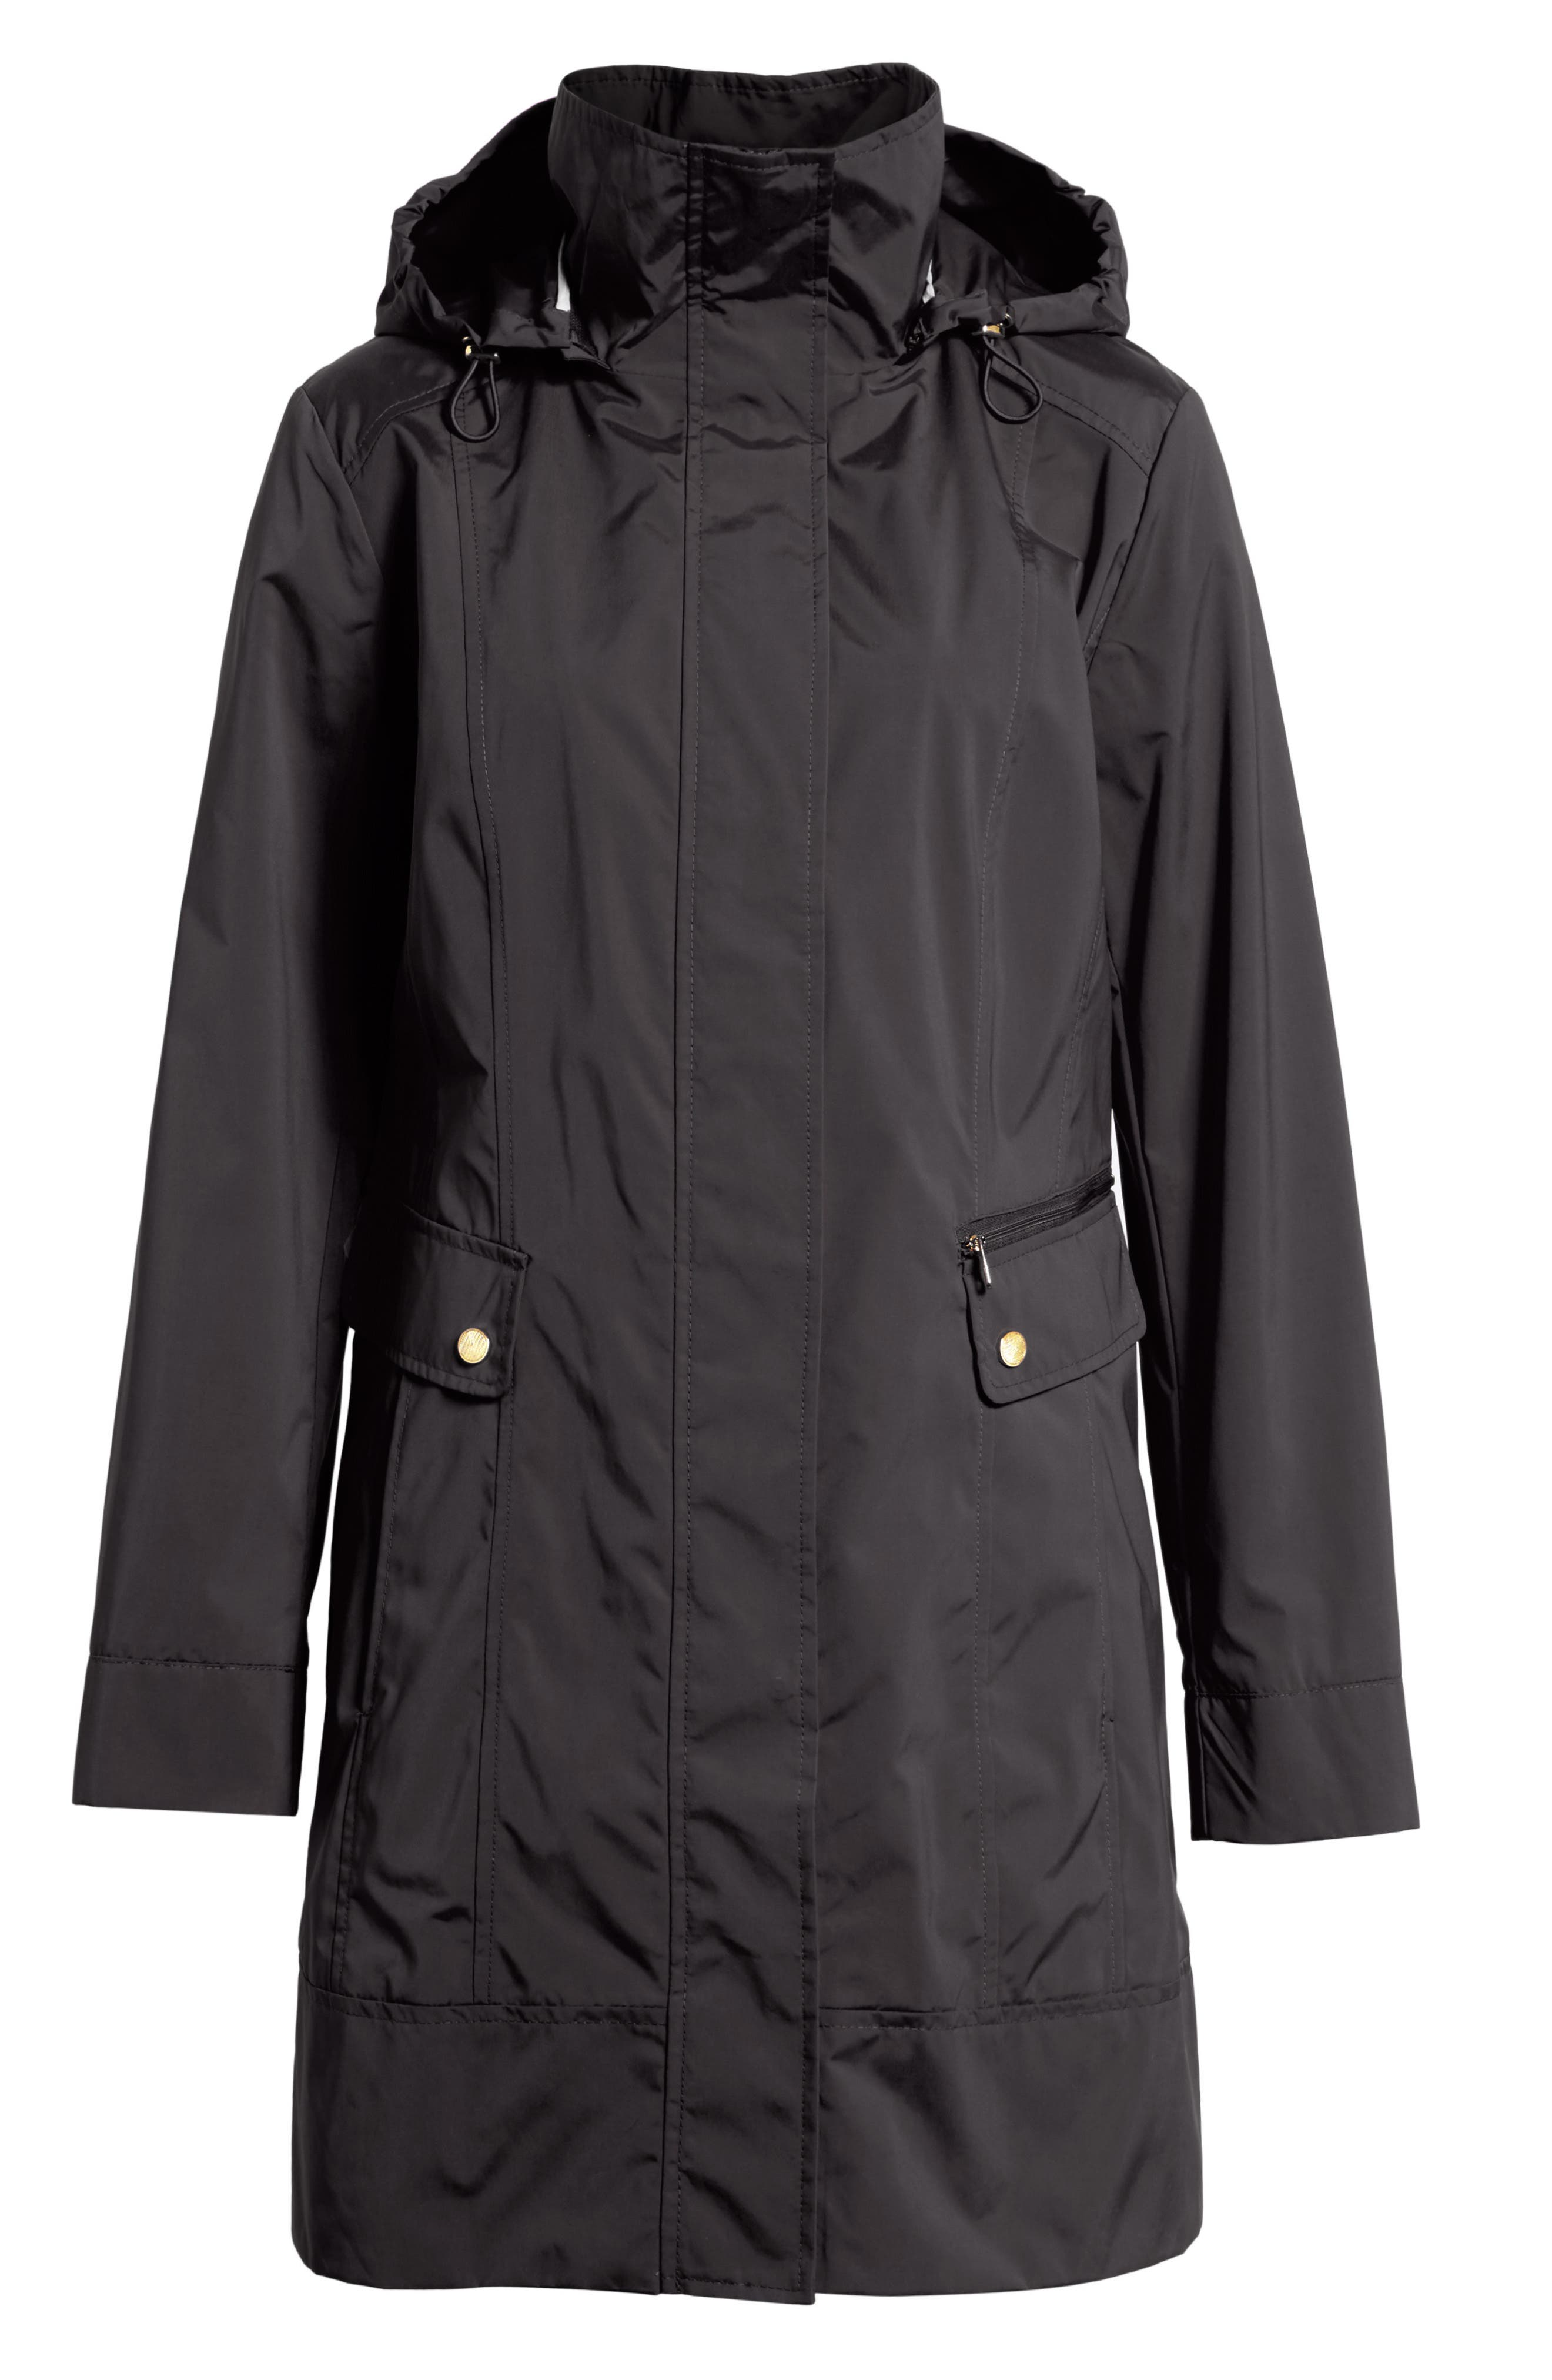 COLE HAAN SIGNATURE, Back Bow Packable Hooded Raincoat, Alternate thumbnail 2, color, BLACK